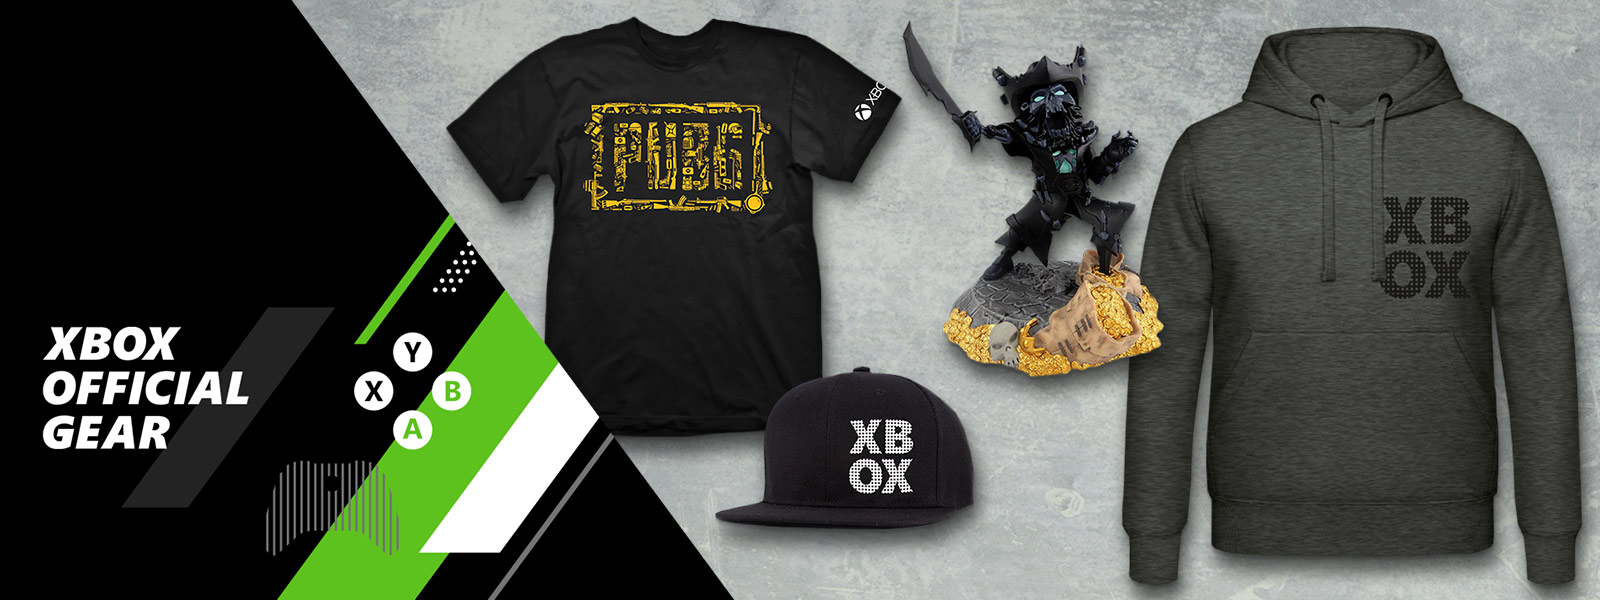 Collection of Xbox offical gear